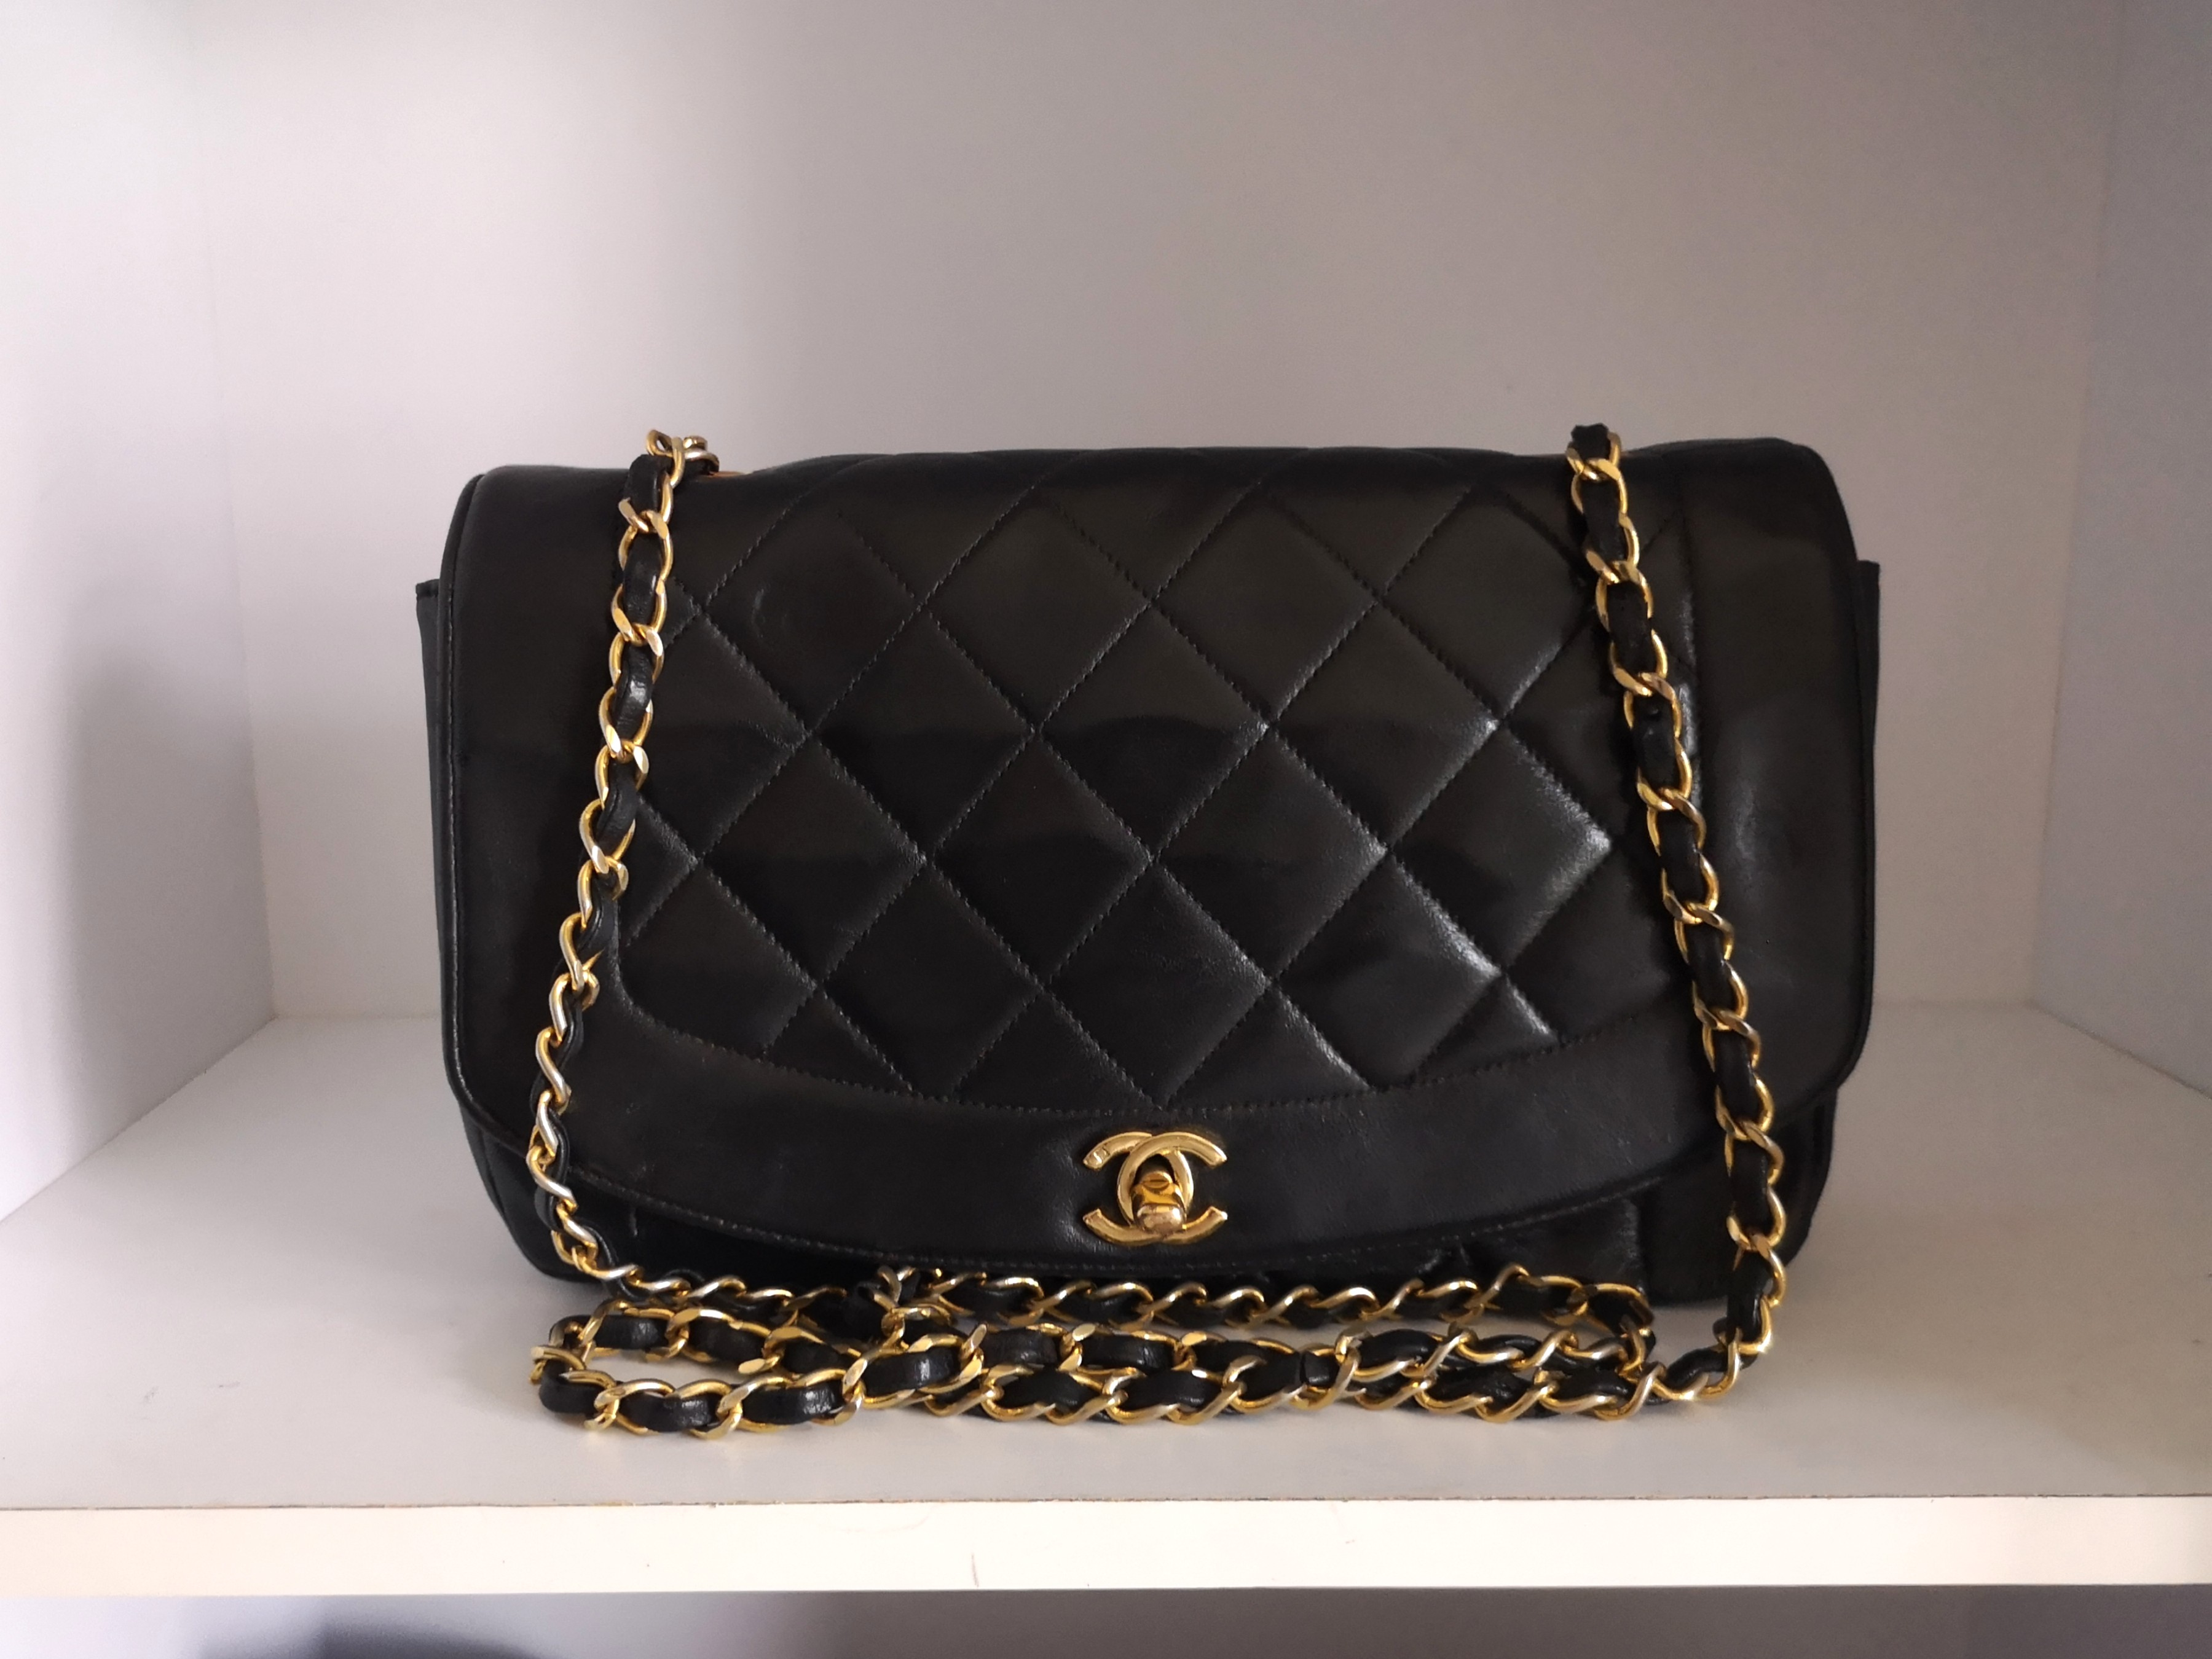 0dc006fa67ca Full Set LN Chanel Diana Flap, Luxury, Bags & Wallets, Handbags on Carousell